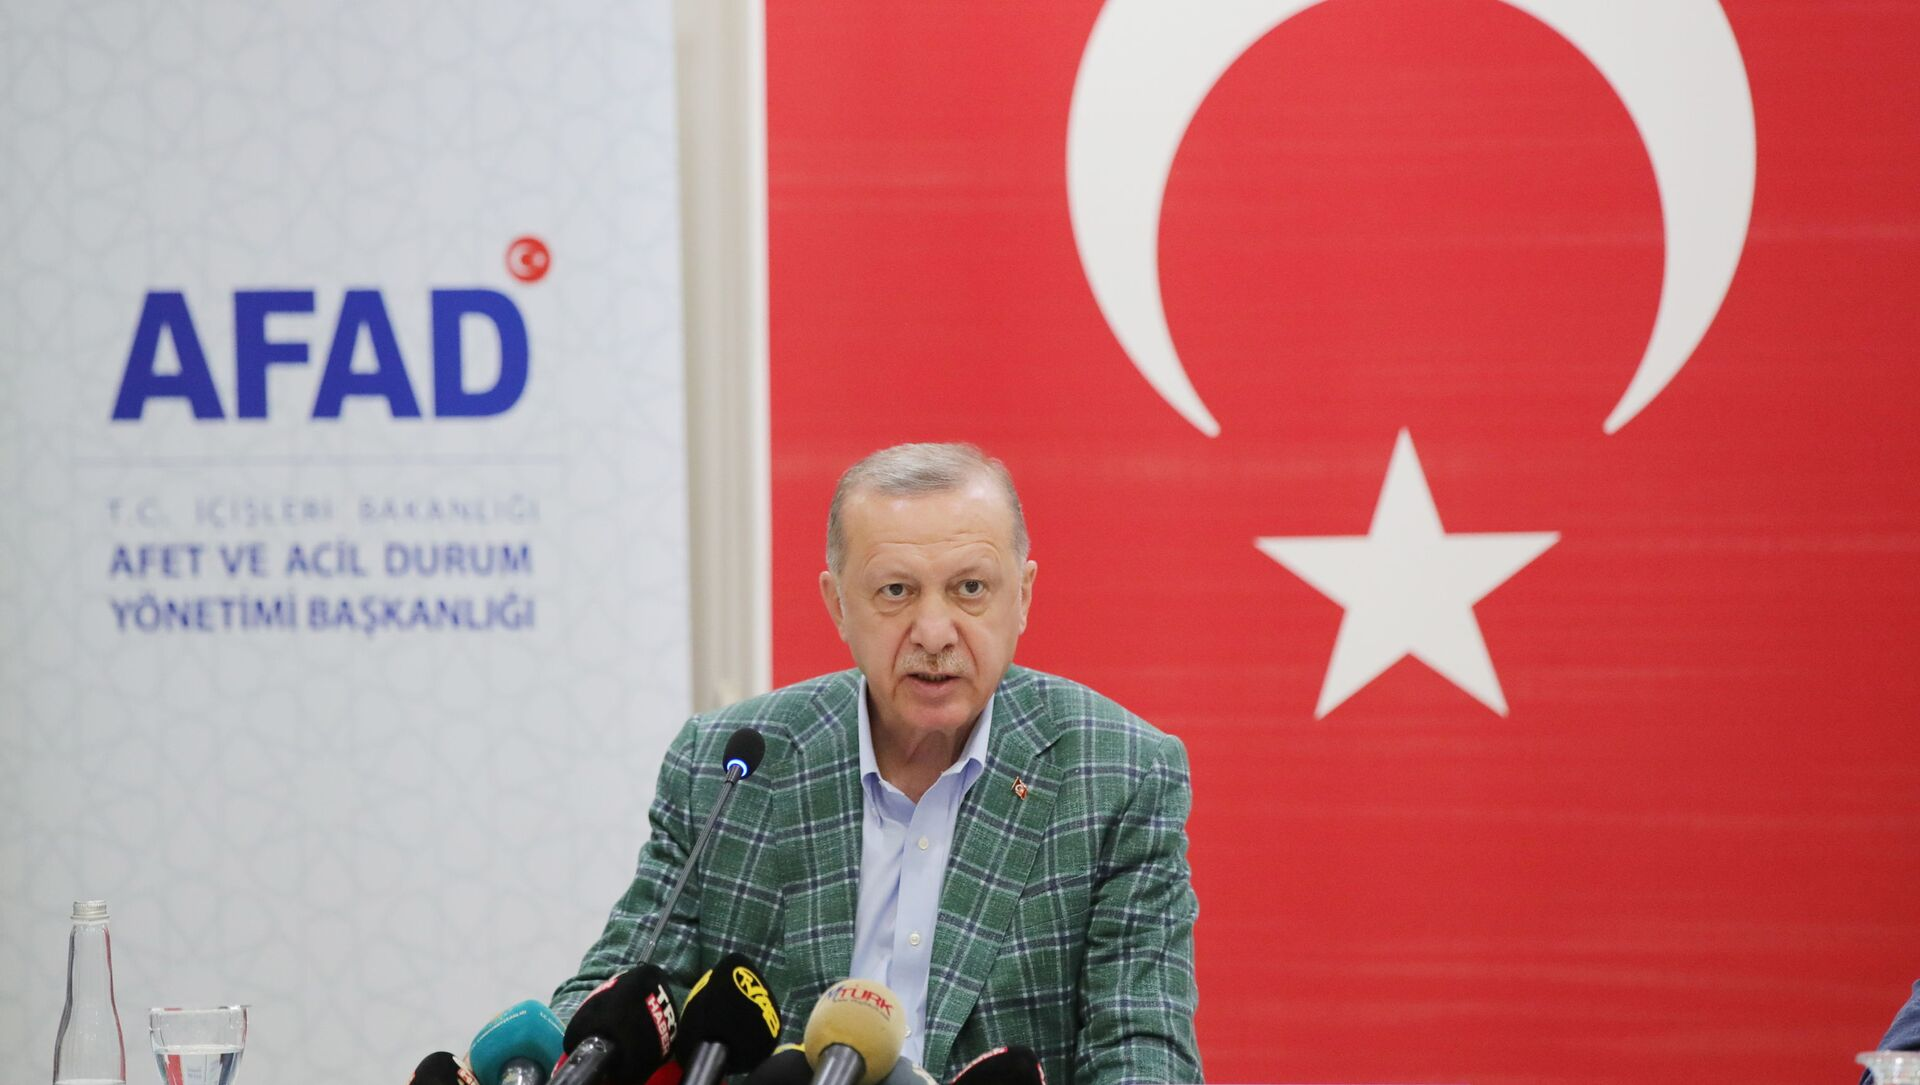 Turkish President Recep Tayyip Erdogan gives a statement after visiting Manavgat and Marmaris to inspect the wildfire disaster, in Marmaris, Turkey, July 31, 2021. - Sputnik International, 1920, 05.08.2021